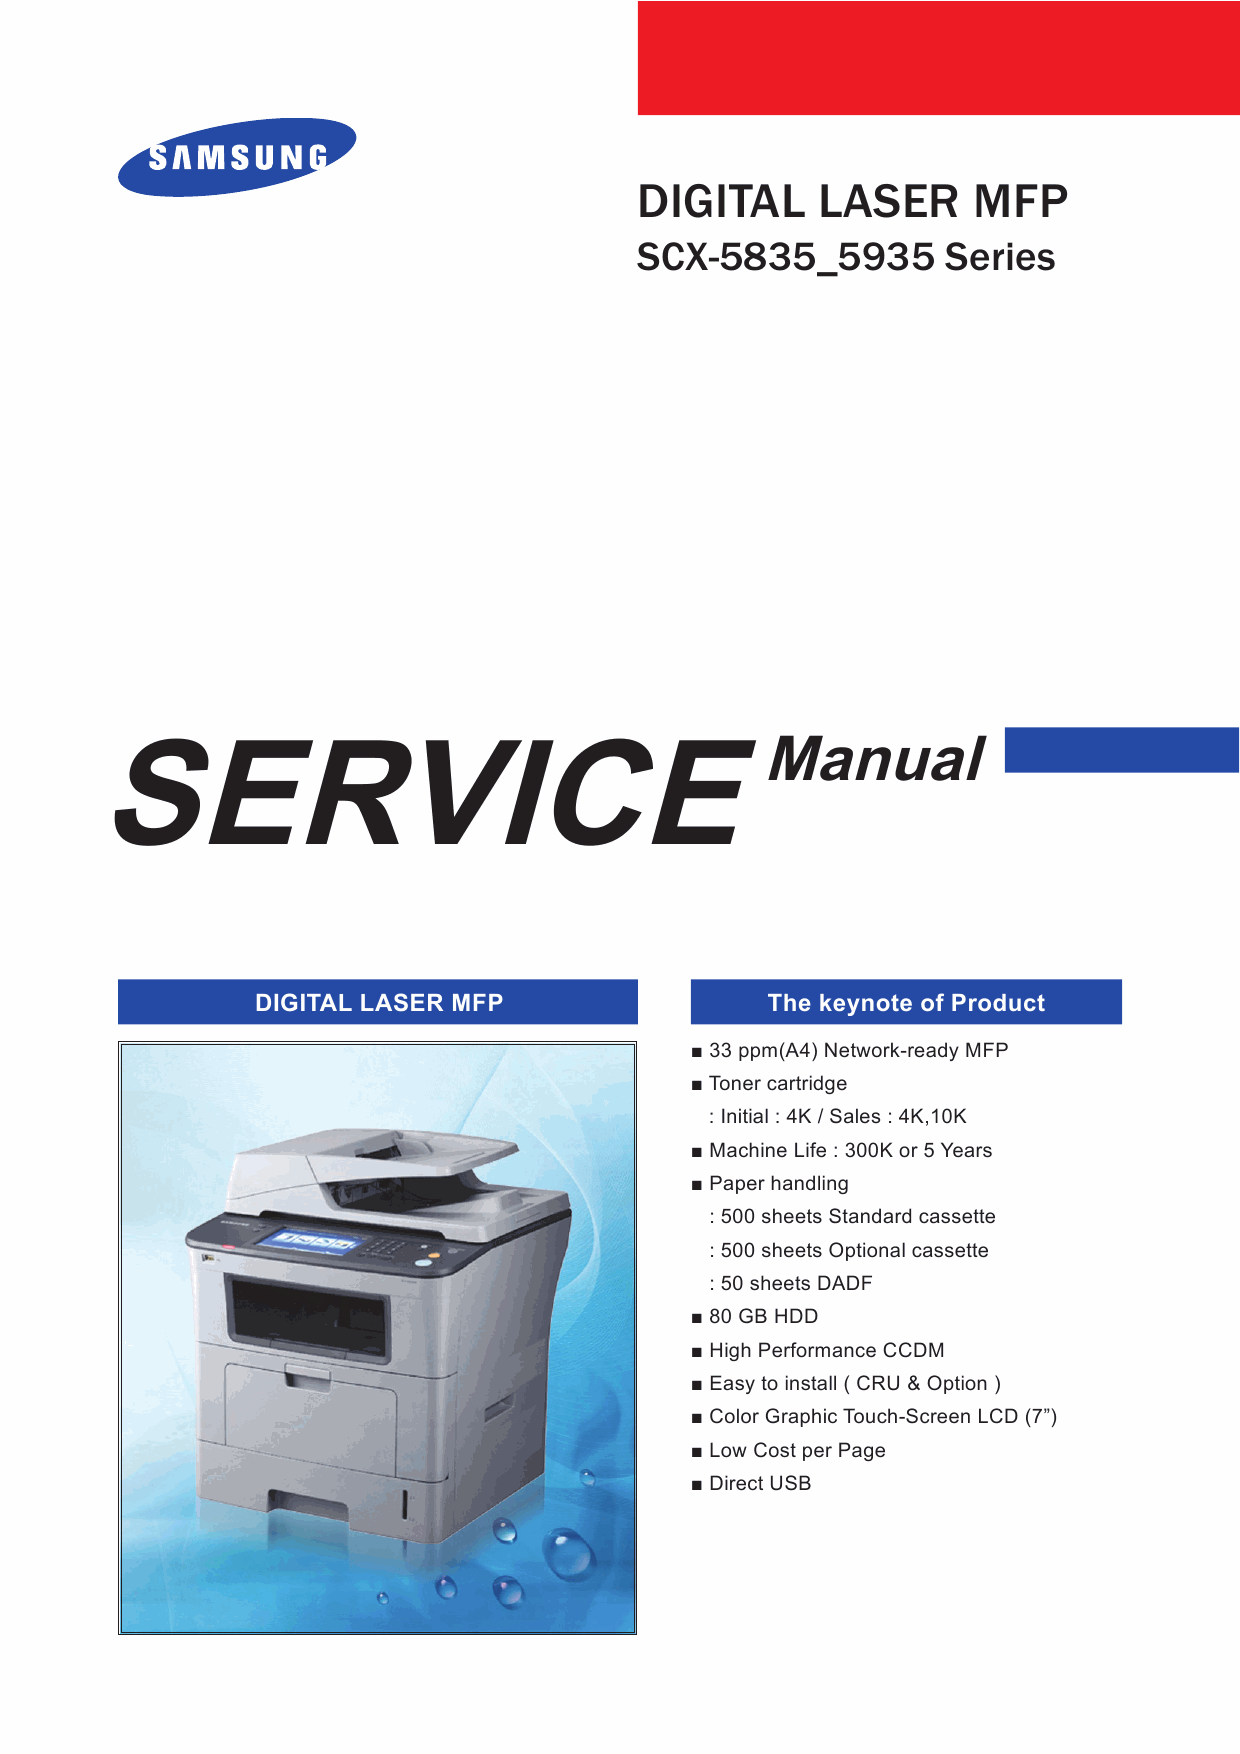 Samsung Digital-Laser-MFP SCX-5835 5935 Parts and Service Manual-1